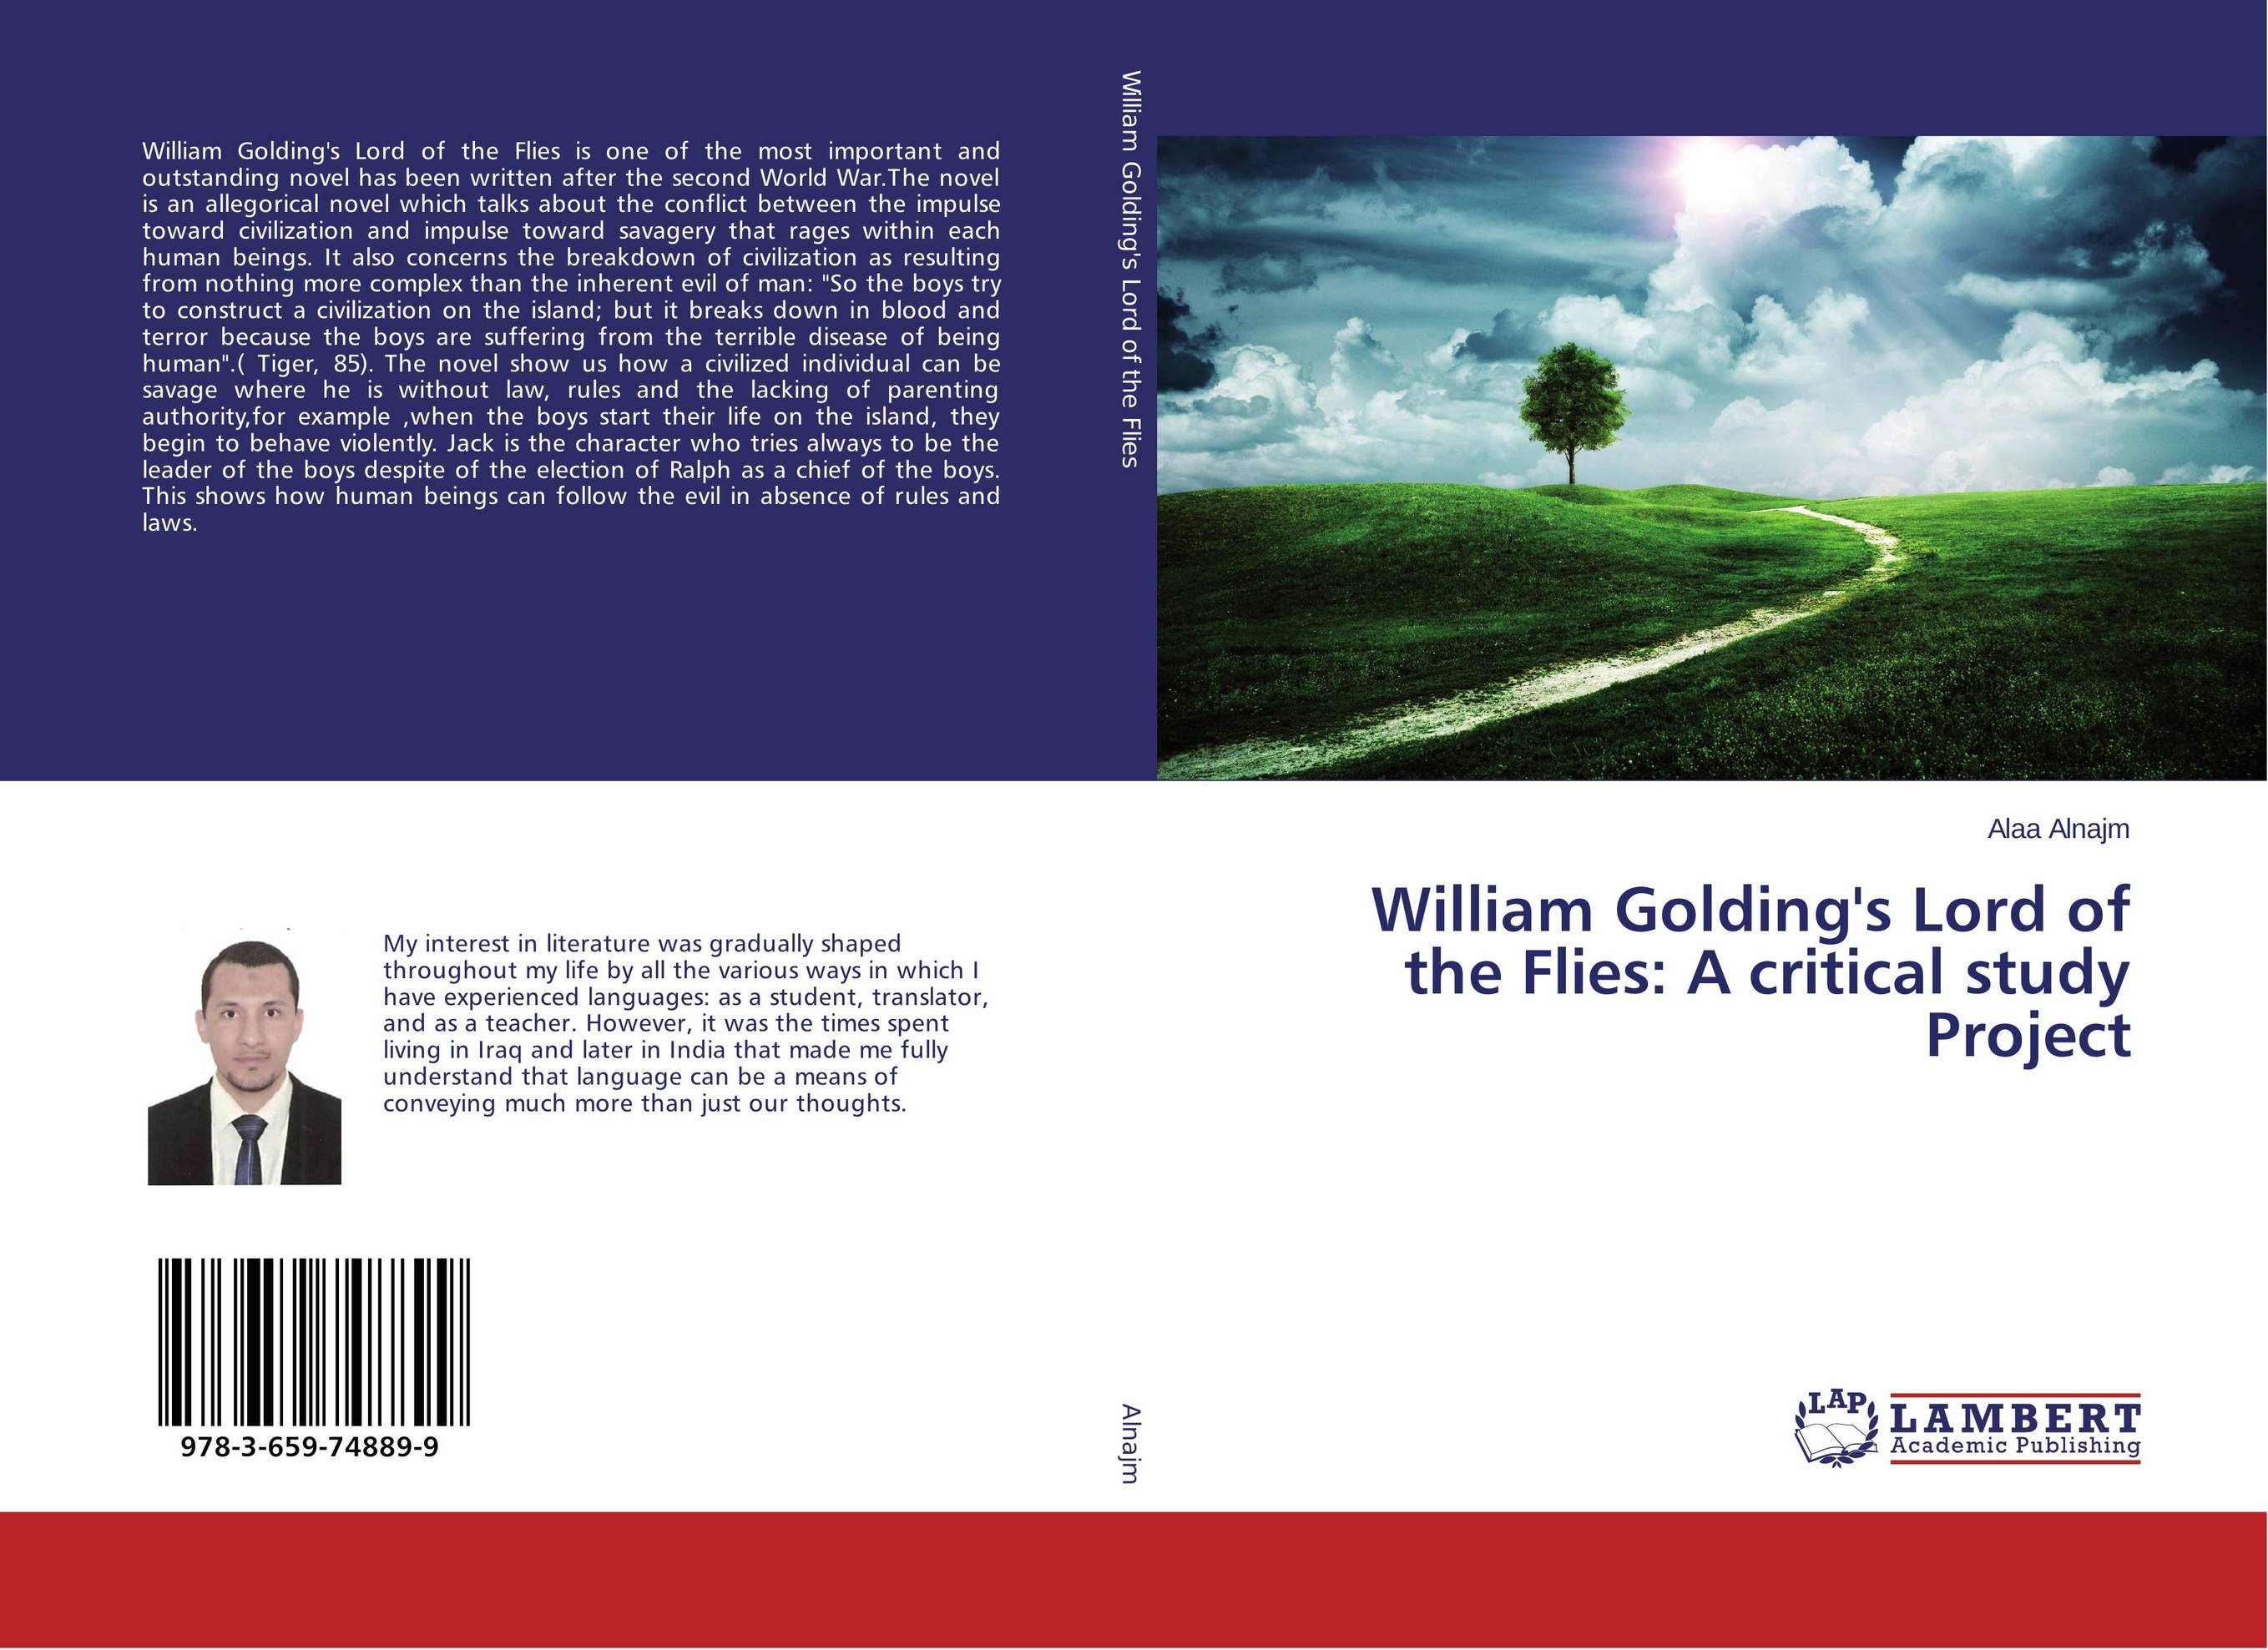 a brief review of william goldings lord of the flies Lord of the flies is a 1954 dystopian novel by nobel prize-winning english author william golding about a group of british boys stuck on an uninhabited island who try to govern themselves with disastrous results its stances on the already controversial subjects of.